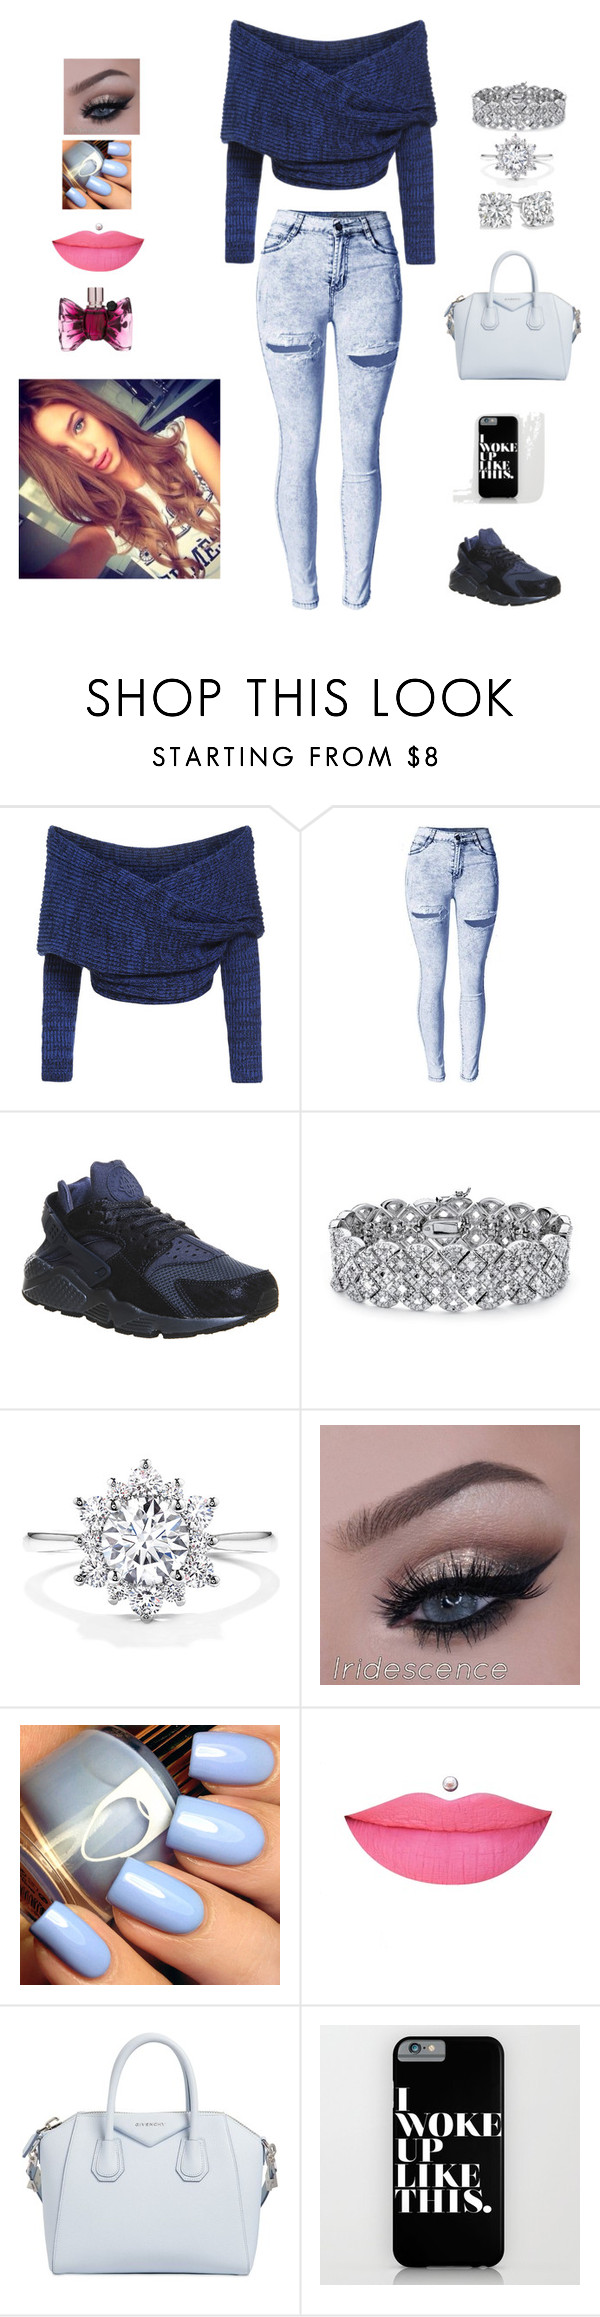 """""""simple day"""" by creative-doll ❤ liked on Polyvore featuring NIKE, Palm Beach Jewelry, Anastasia Beverly Hills, Givenchy and Viktor & Rolf"""